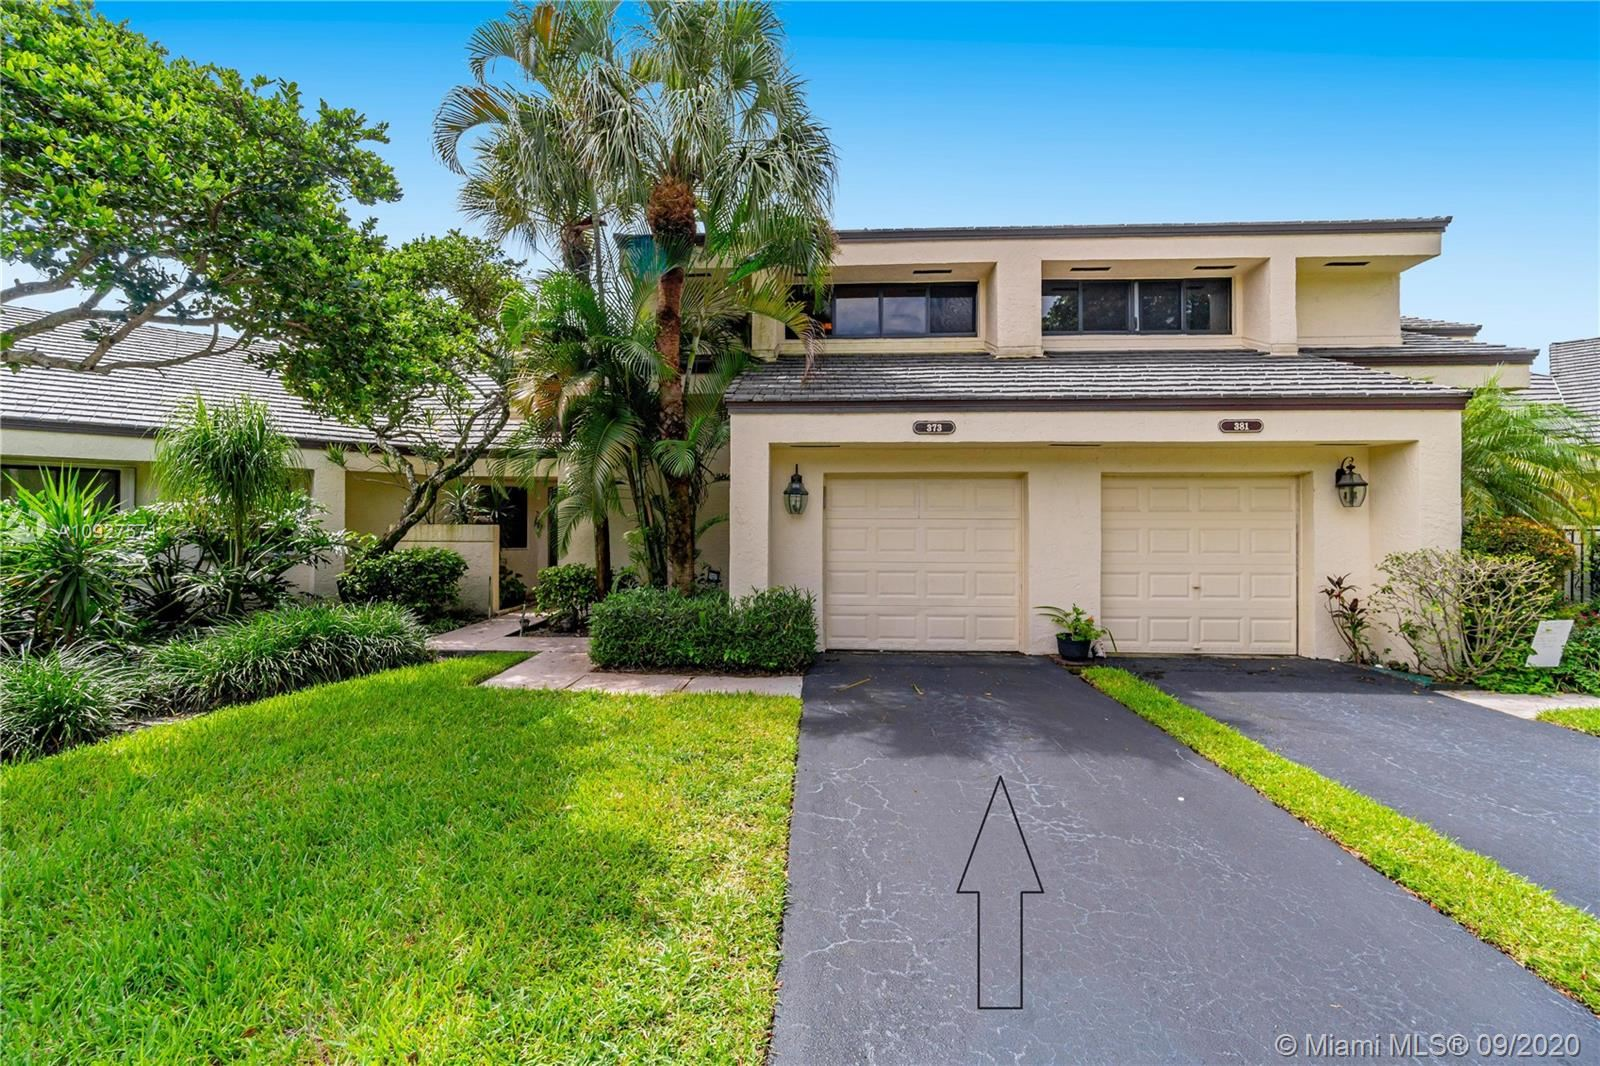 373 NW 95th Ave, Plantation, FL 33324 - #: A10927571